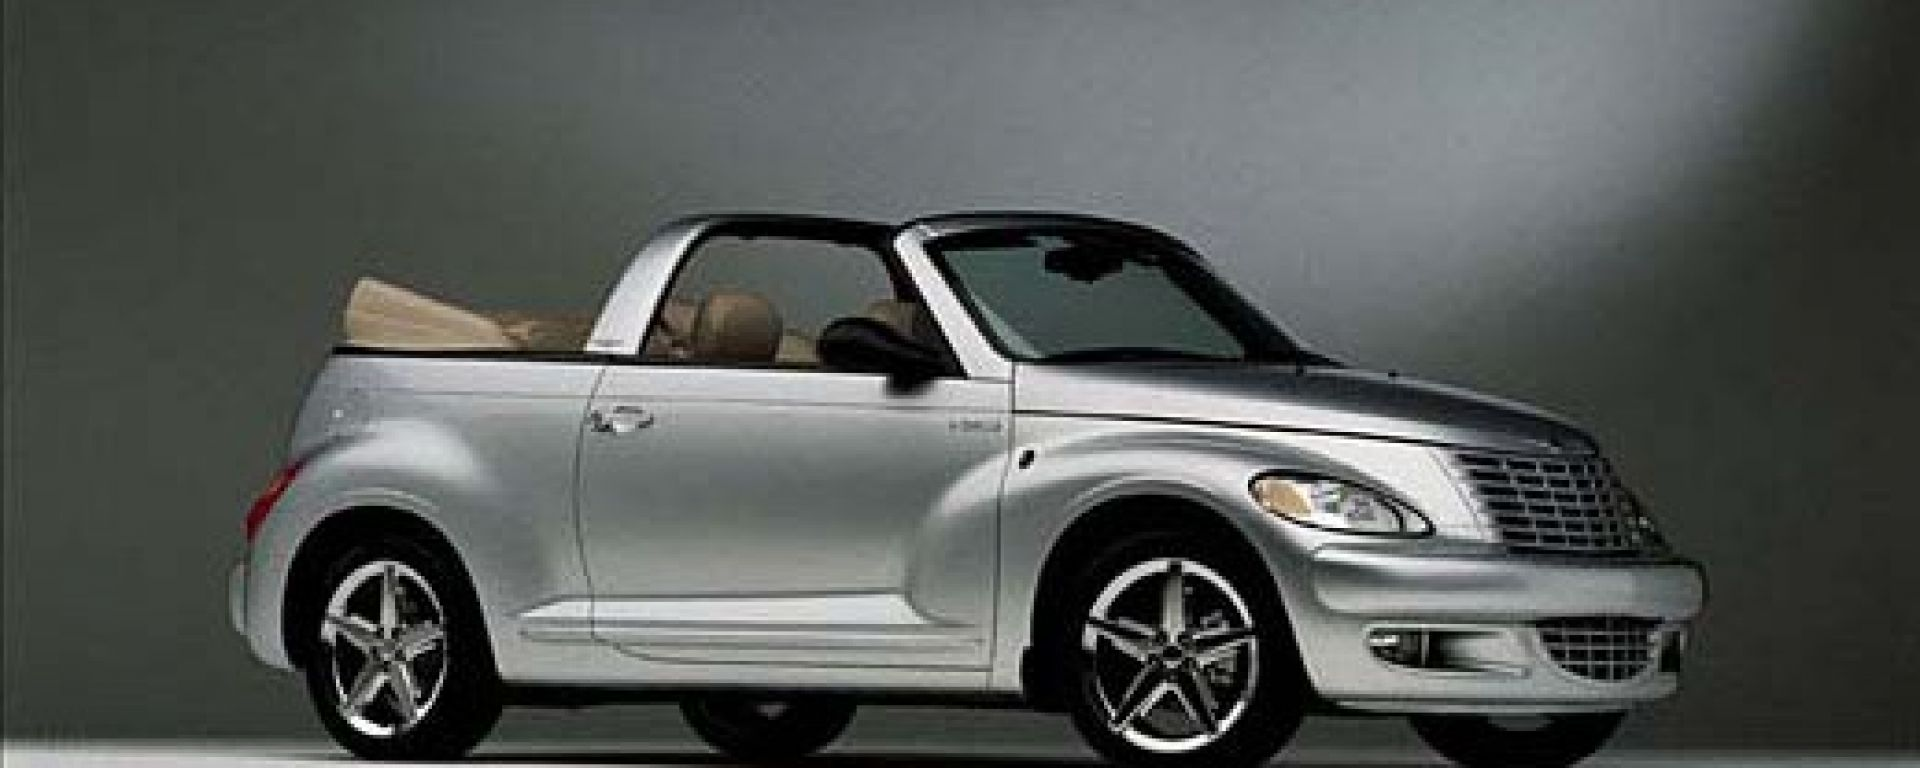 anteprima chrysler pt cruiser cabrio motorbox. Black Bedroom Furniture Sets. Home Design Ideas